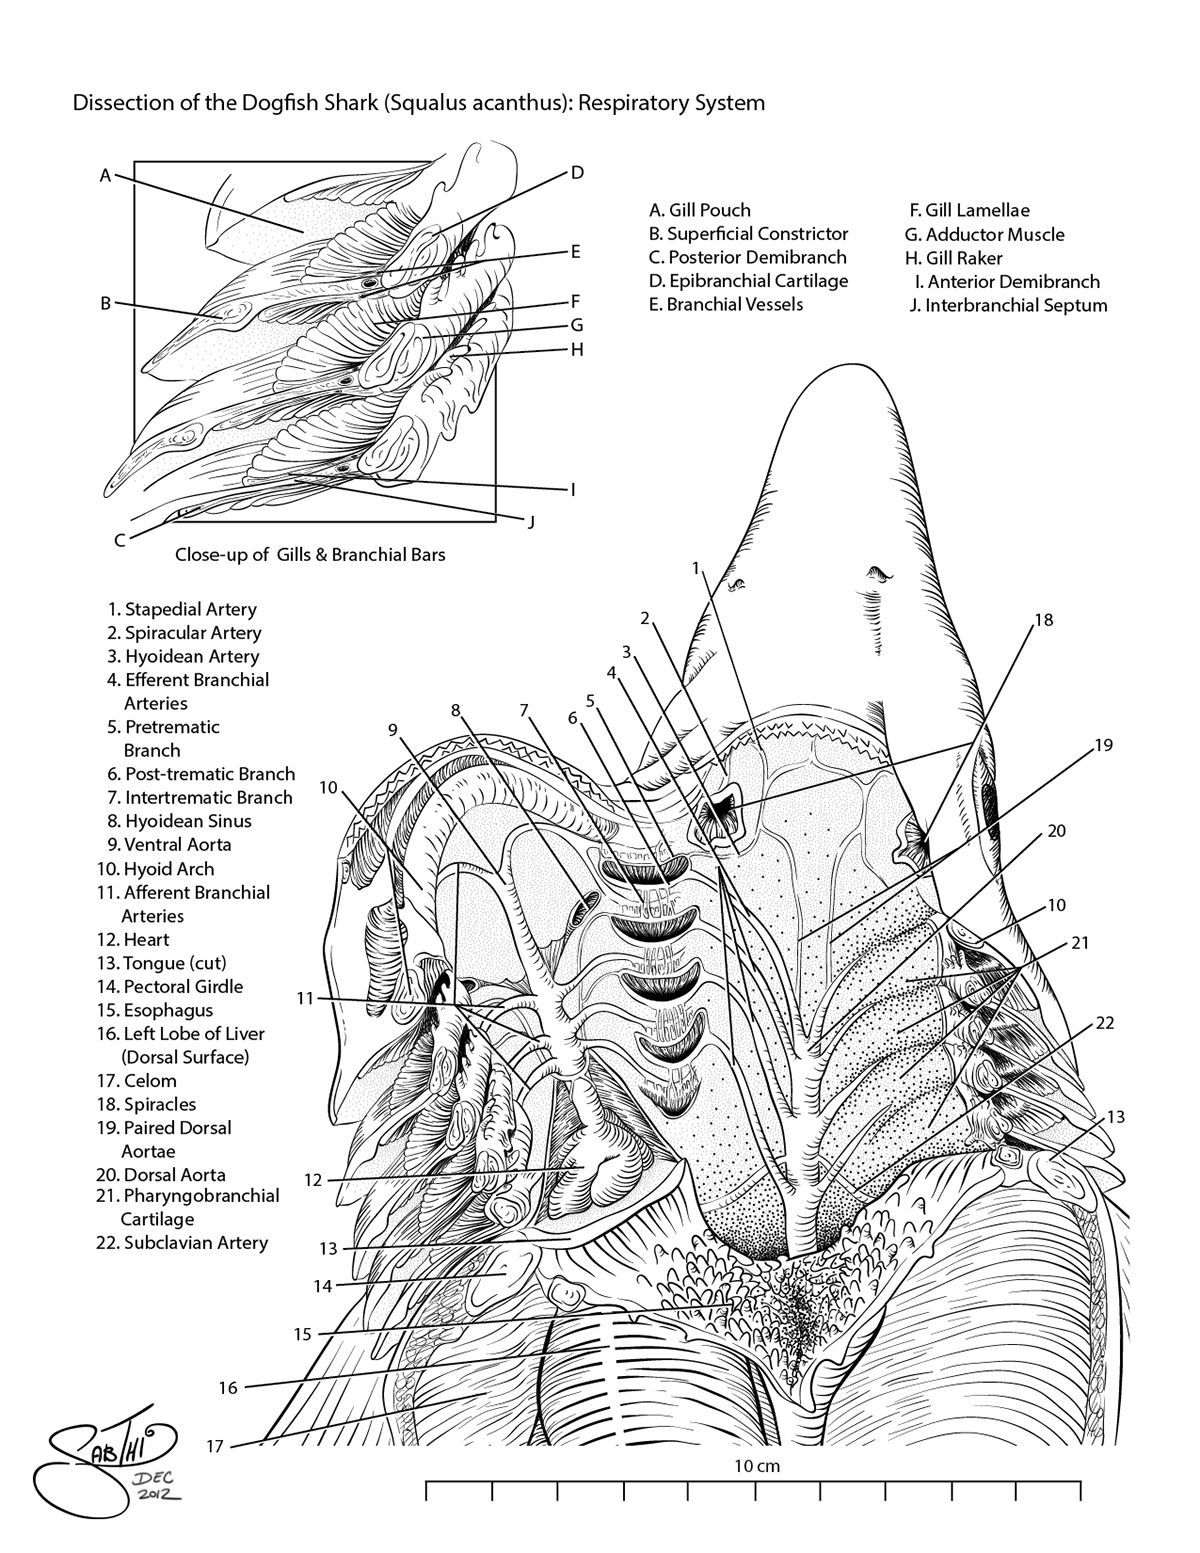 shark dissection guide diagram intertherm electric respiratory system of the dogfish on behance